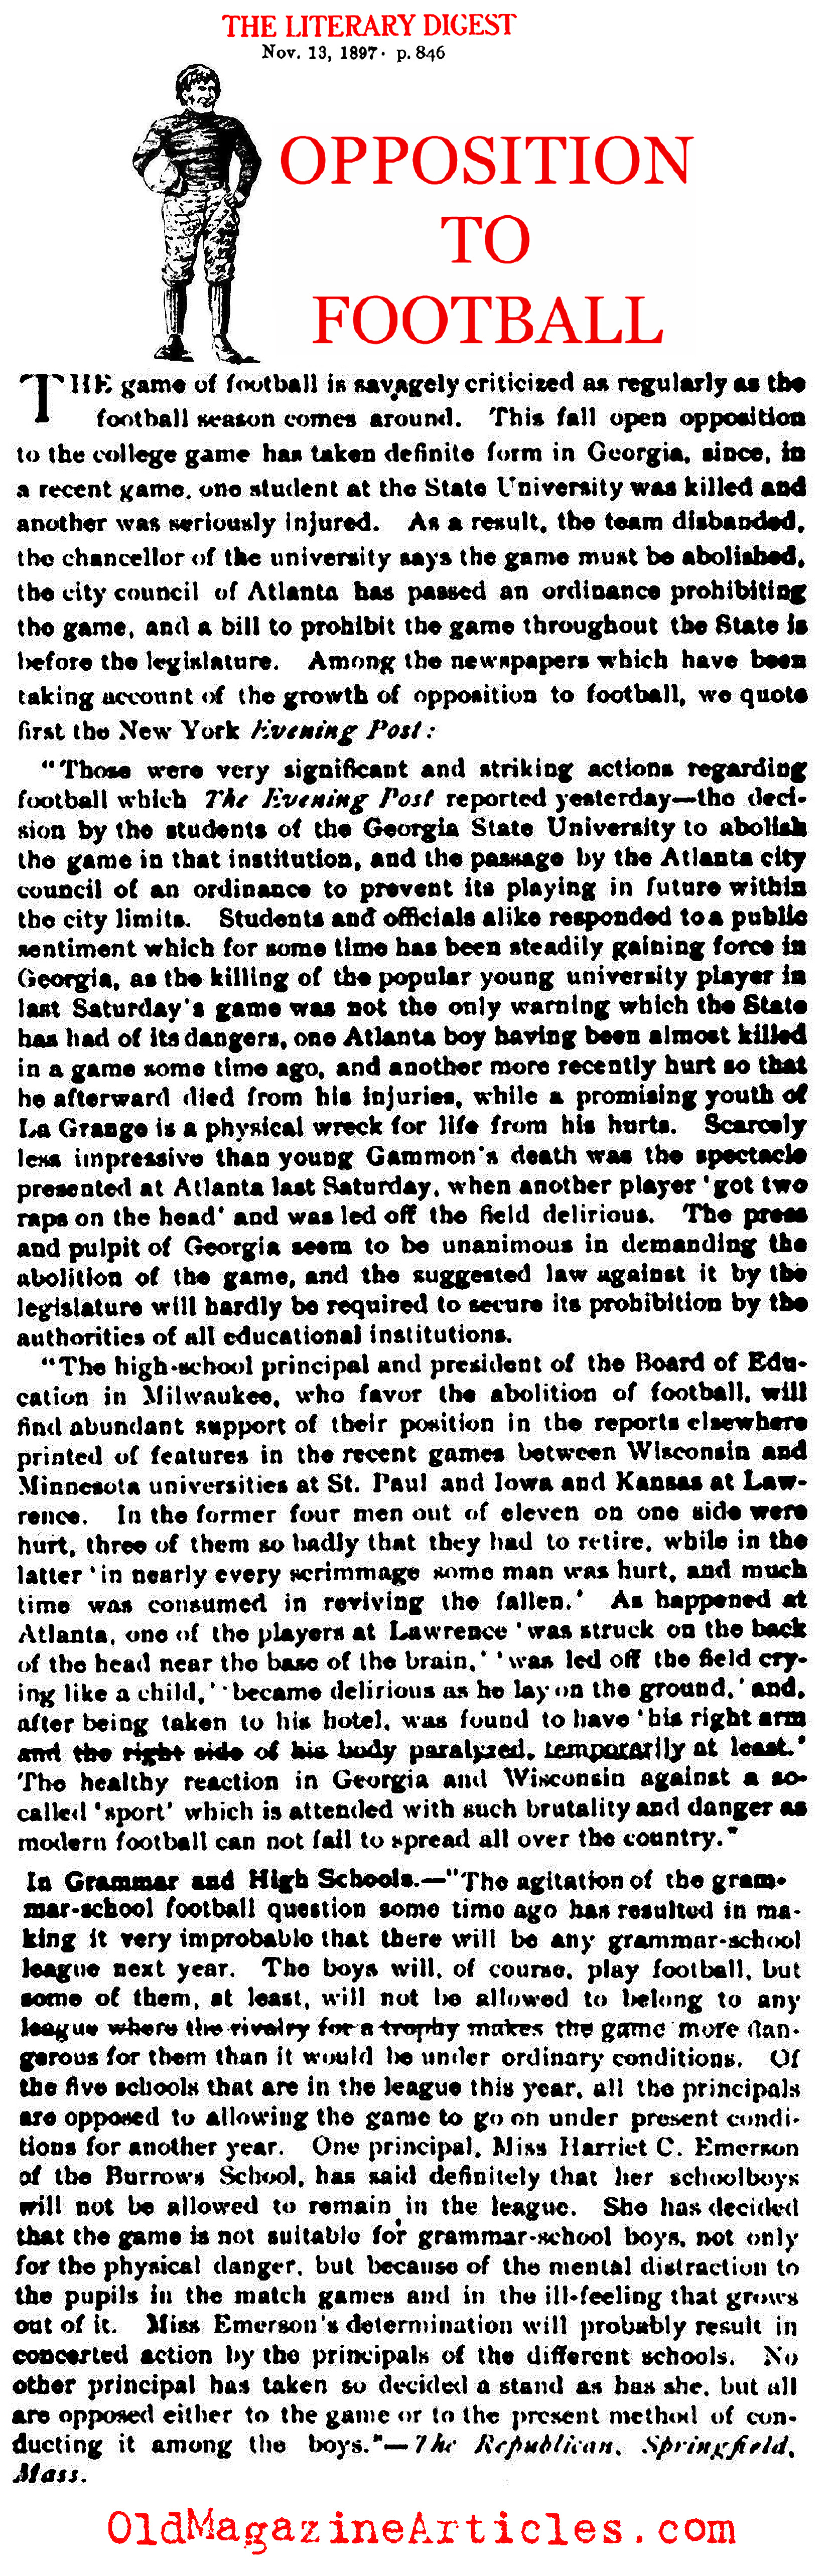 The Case Against Football (Literary Digest, 1897)